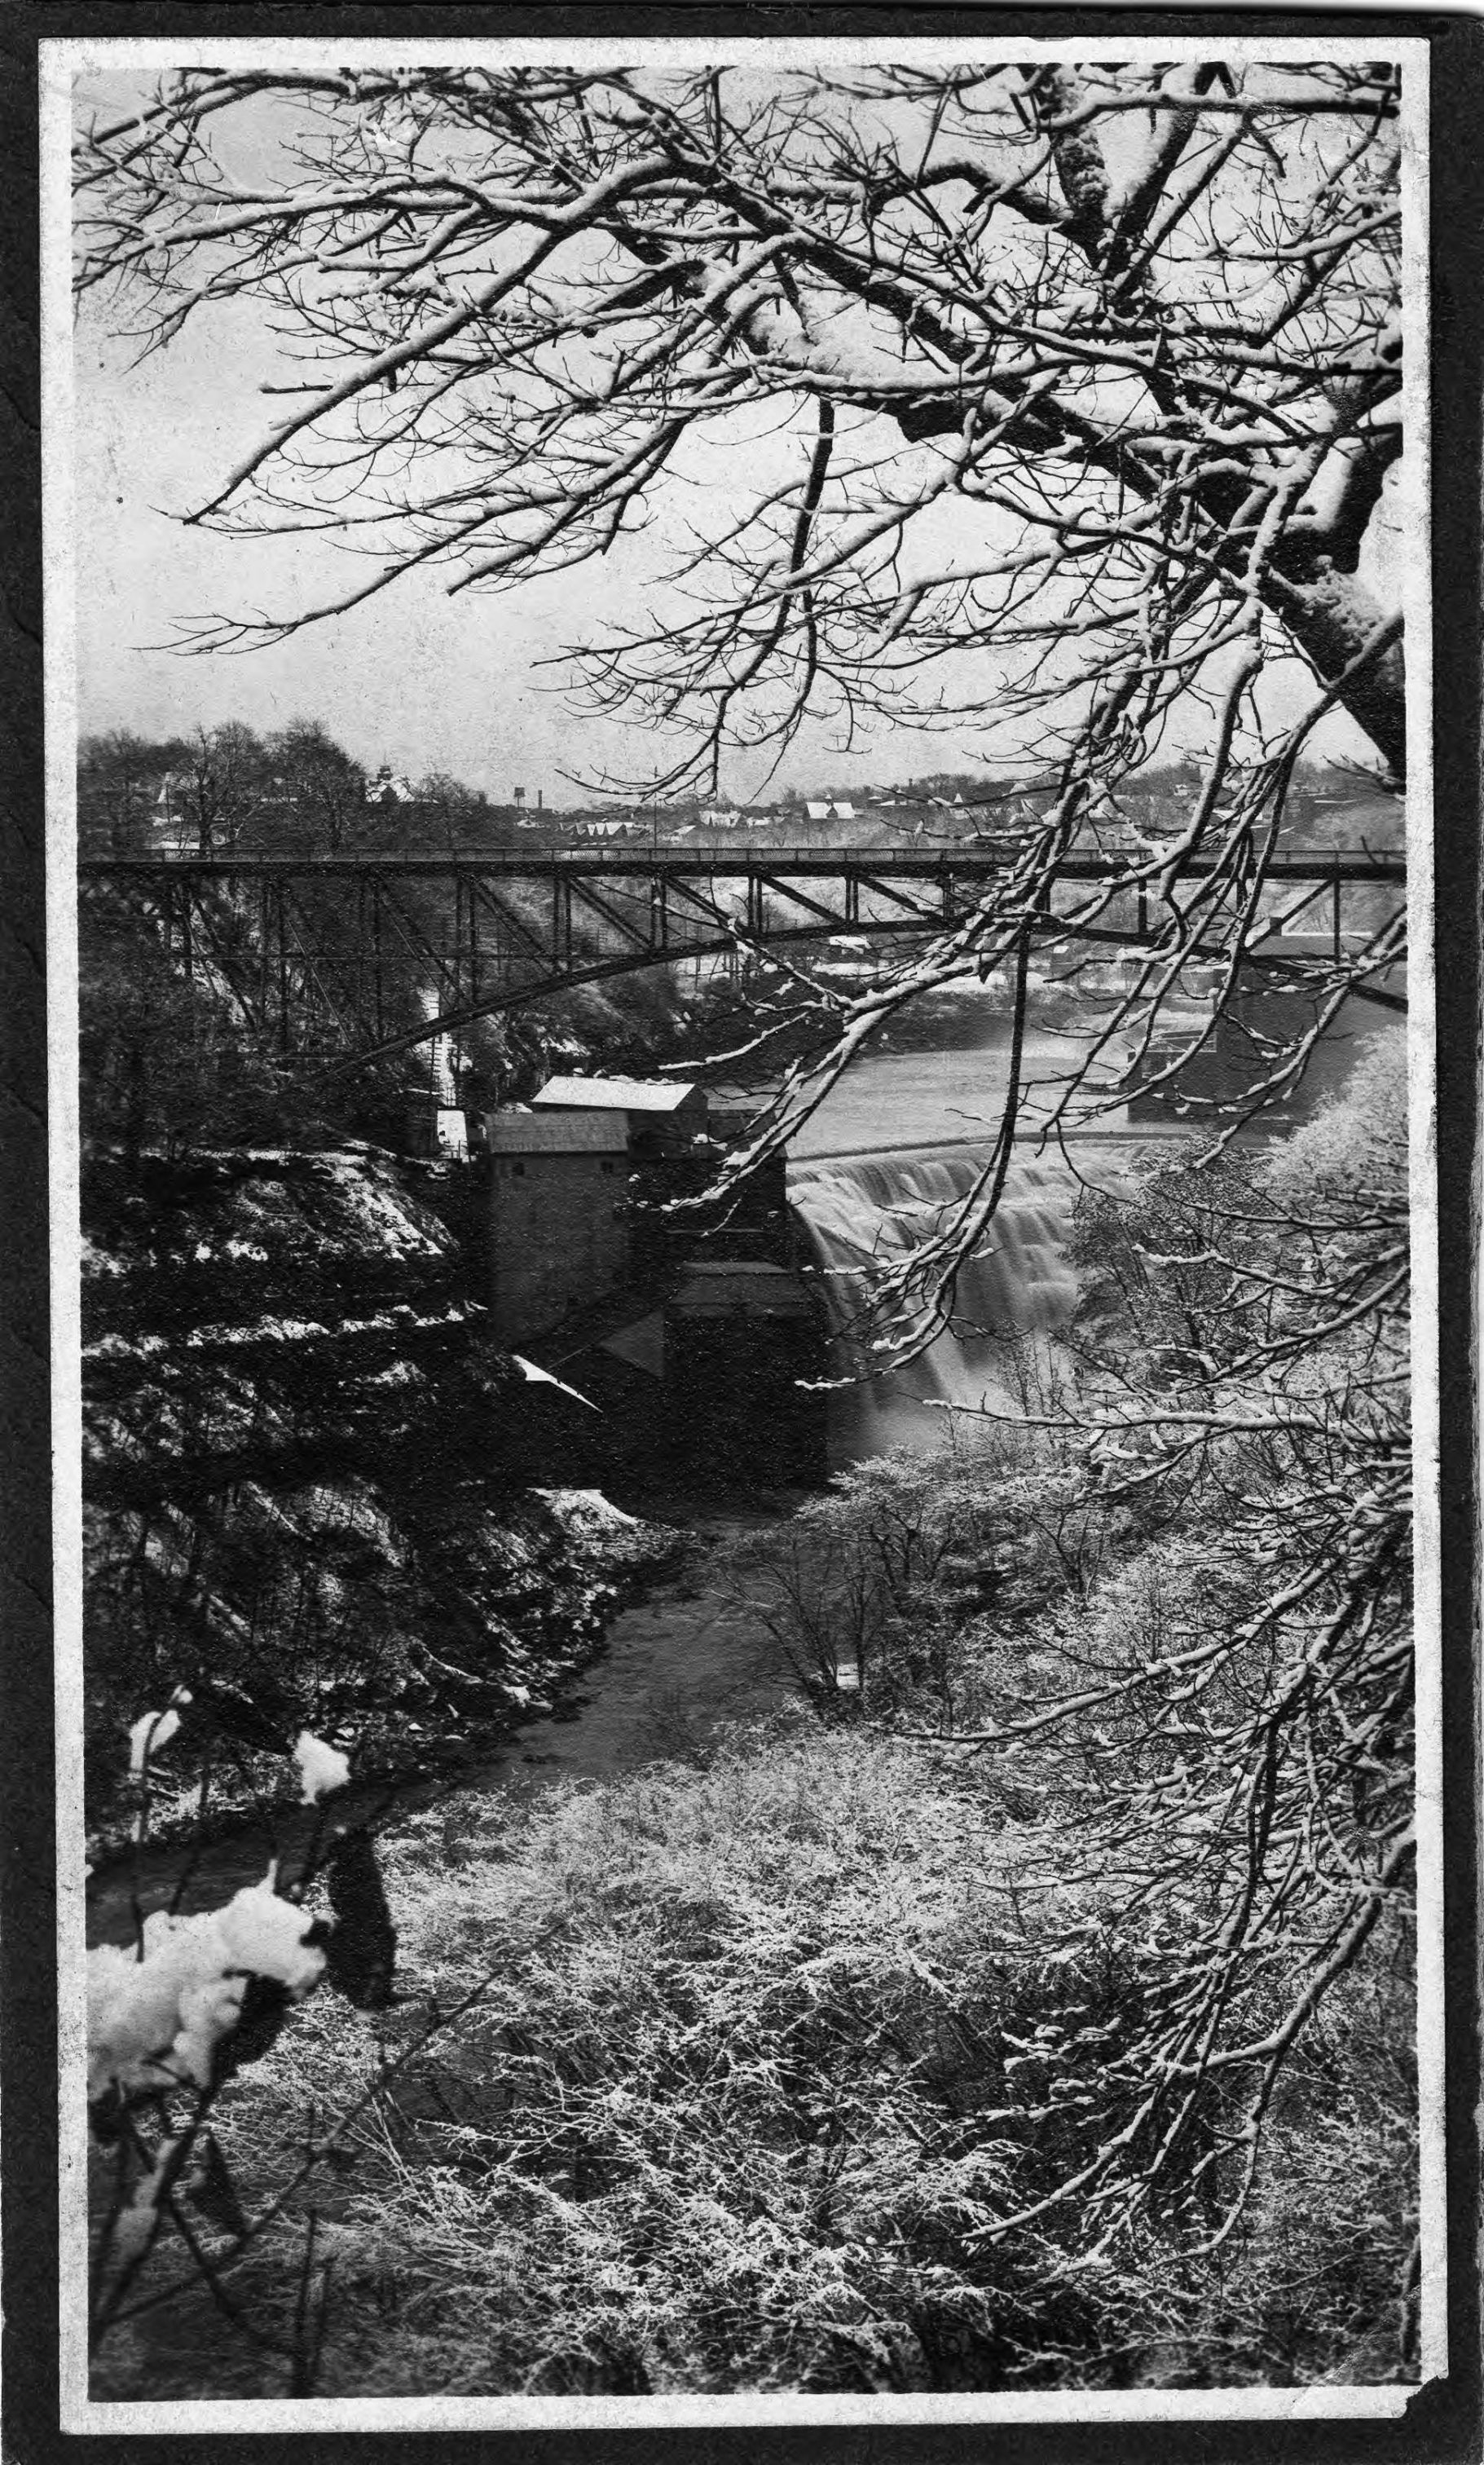 Photographs of watermills are rare because they were largely outmoded by the time photography became common. This undated photograph by Roman Kwasniewski shows a mill, bridge, and waterfall in winter.